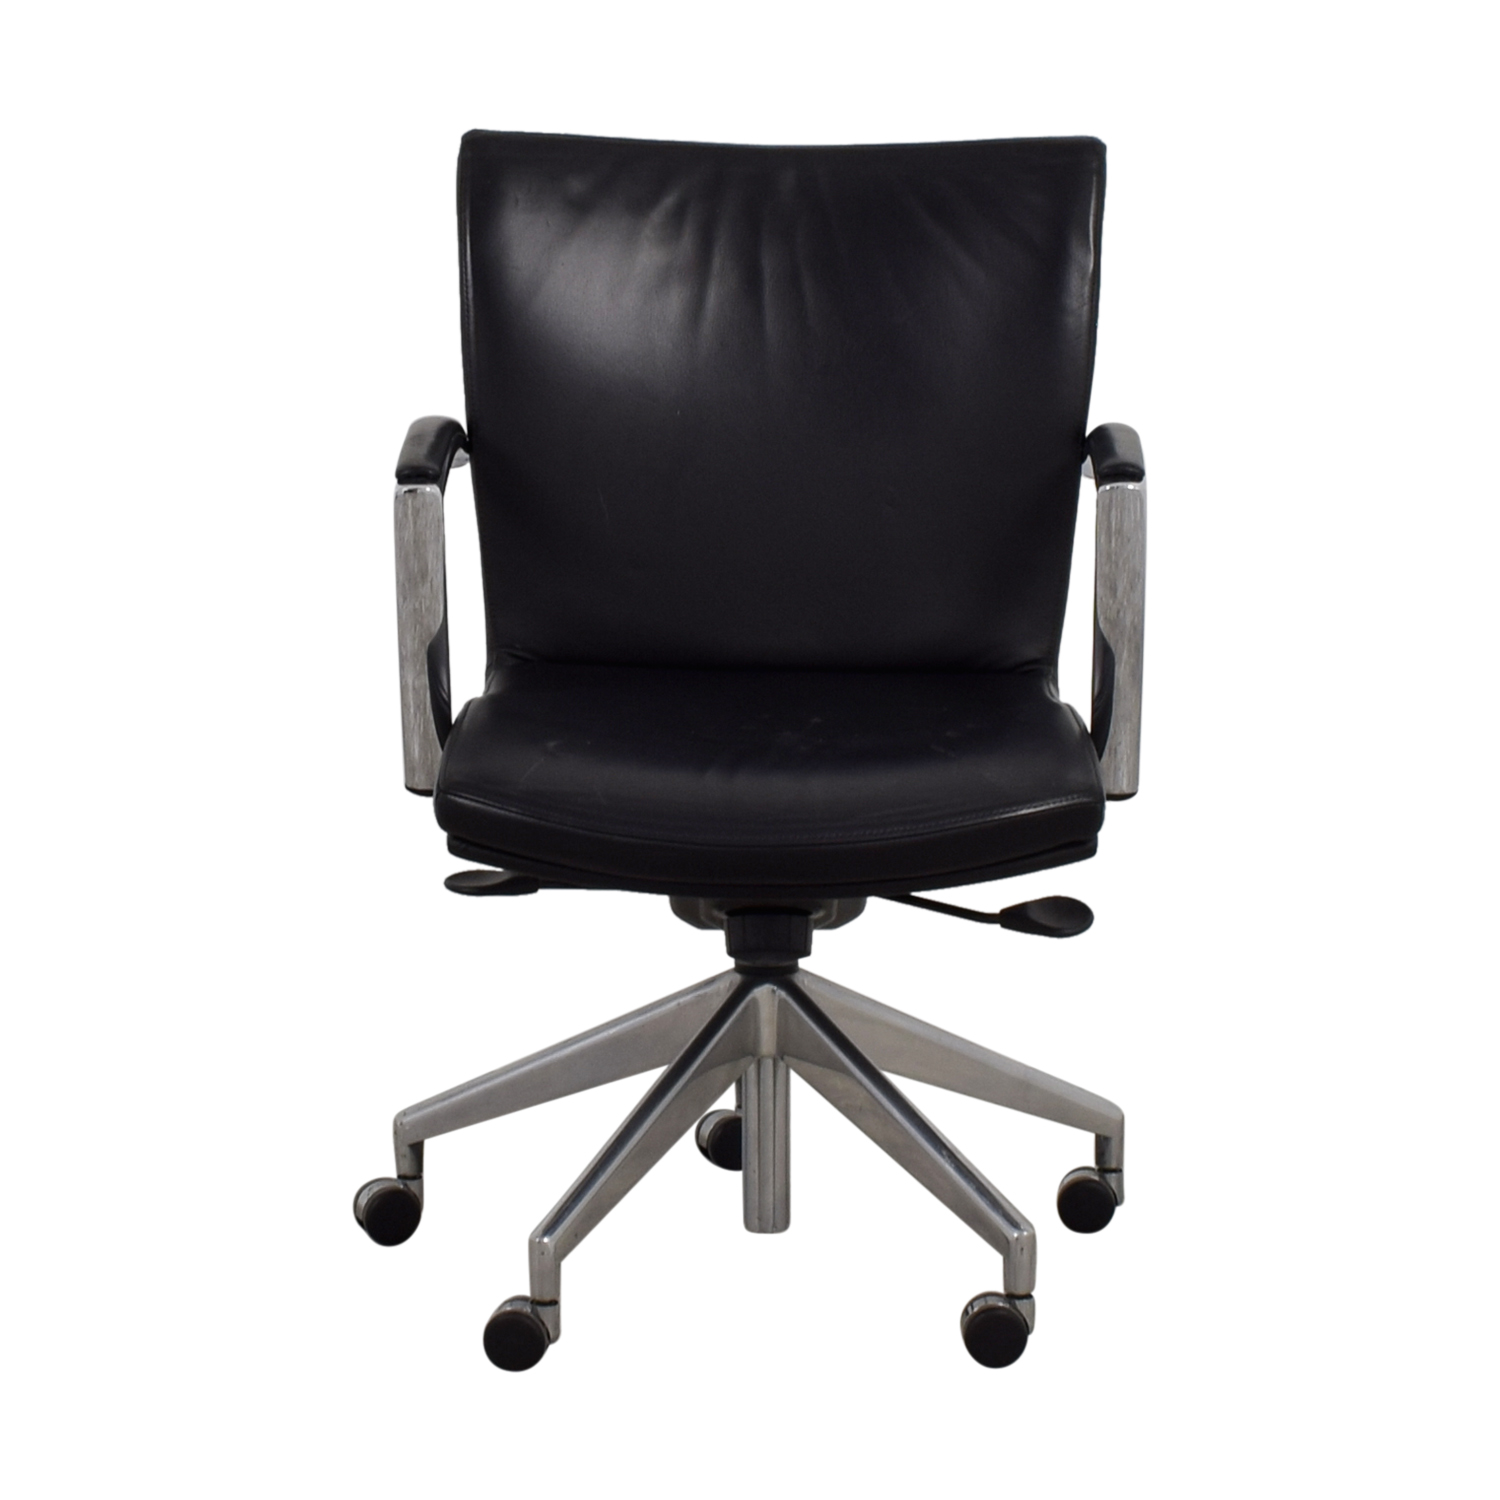 Black Leather Desk Chair dimensions